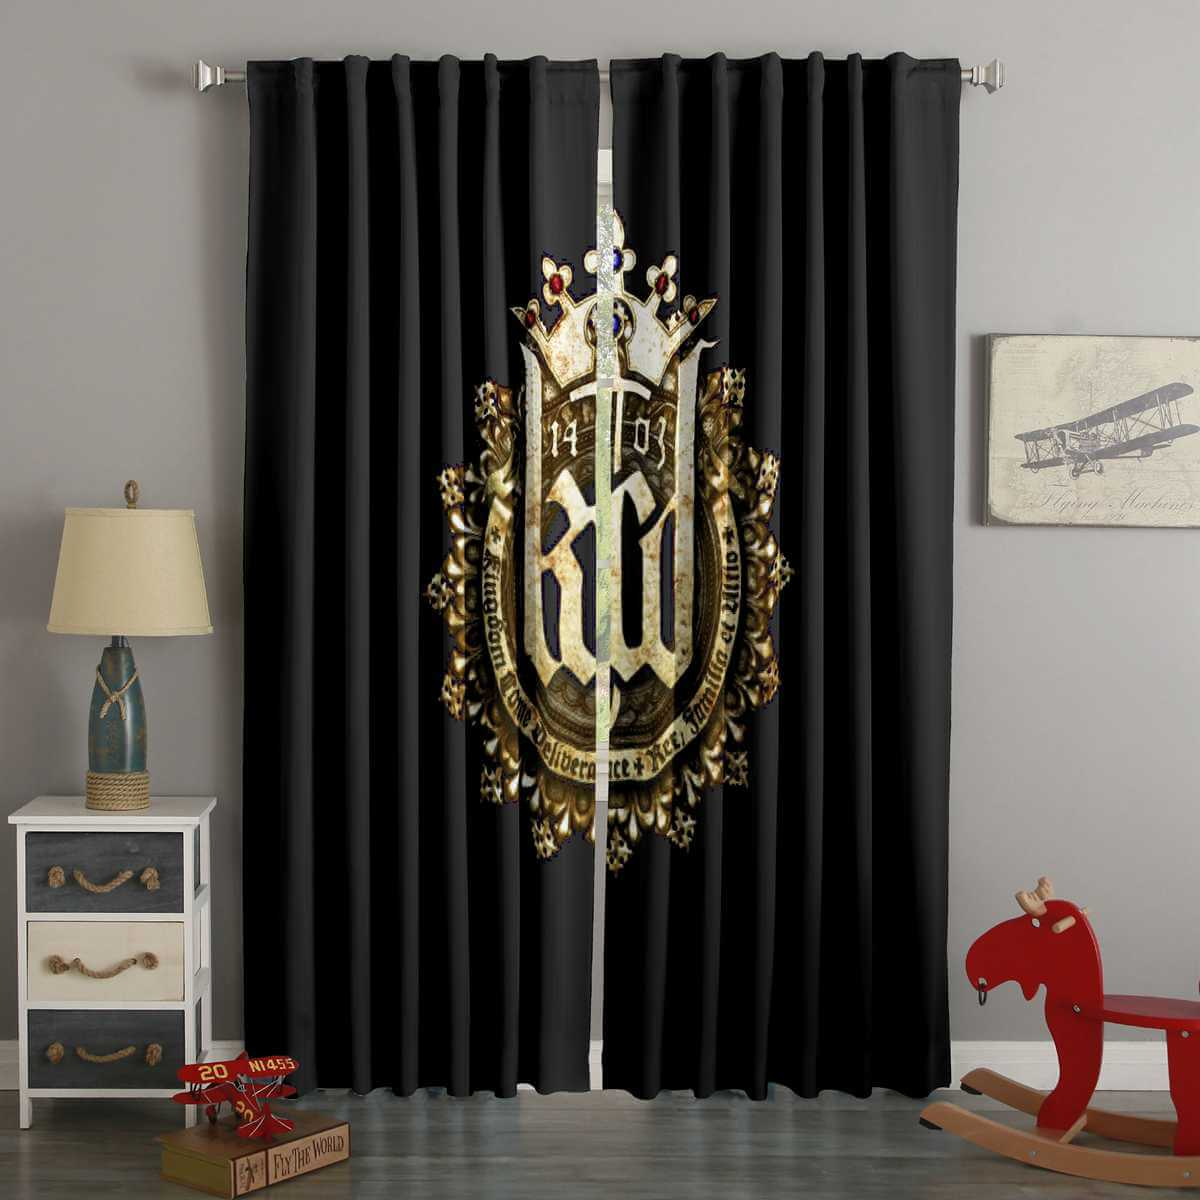 3D Printed Kingdom Come Deliverance Style Custom Living Room Curtains